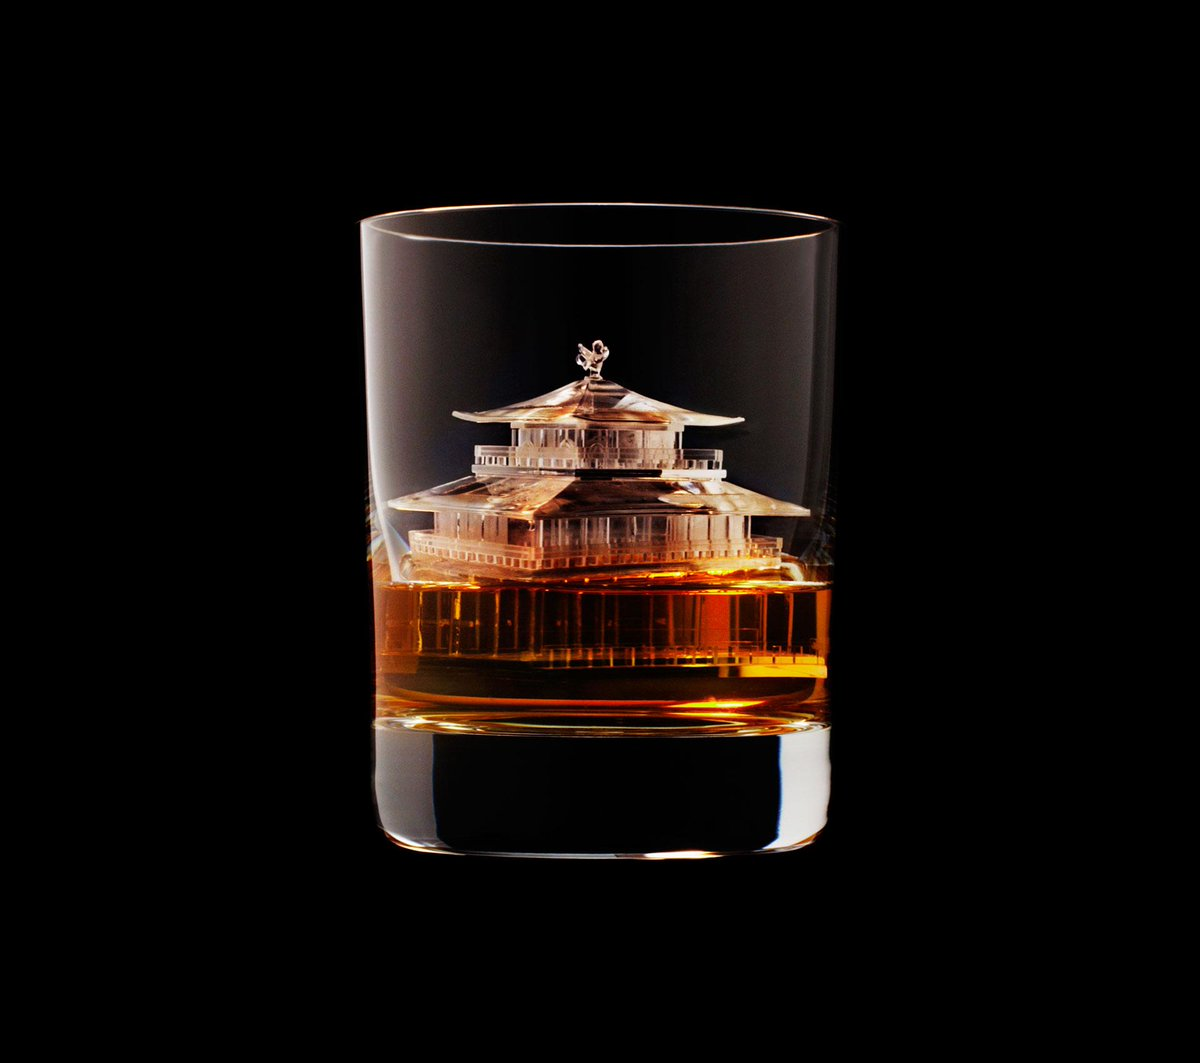 #TBWAHakuhodo RT @adweek: Suntory Whisky 3-D printed the world's most incredible ice cubes. http://t.co/Gdv2V0RxBM http://t.co/vsMeLp6WJW